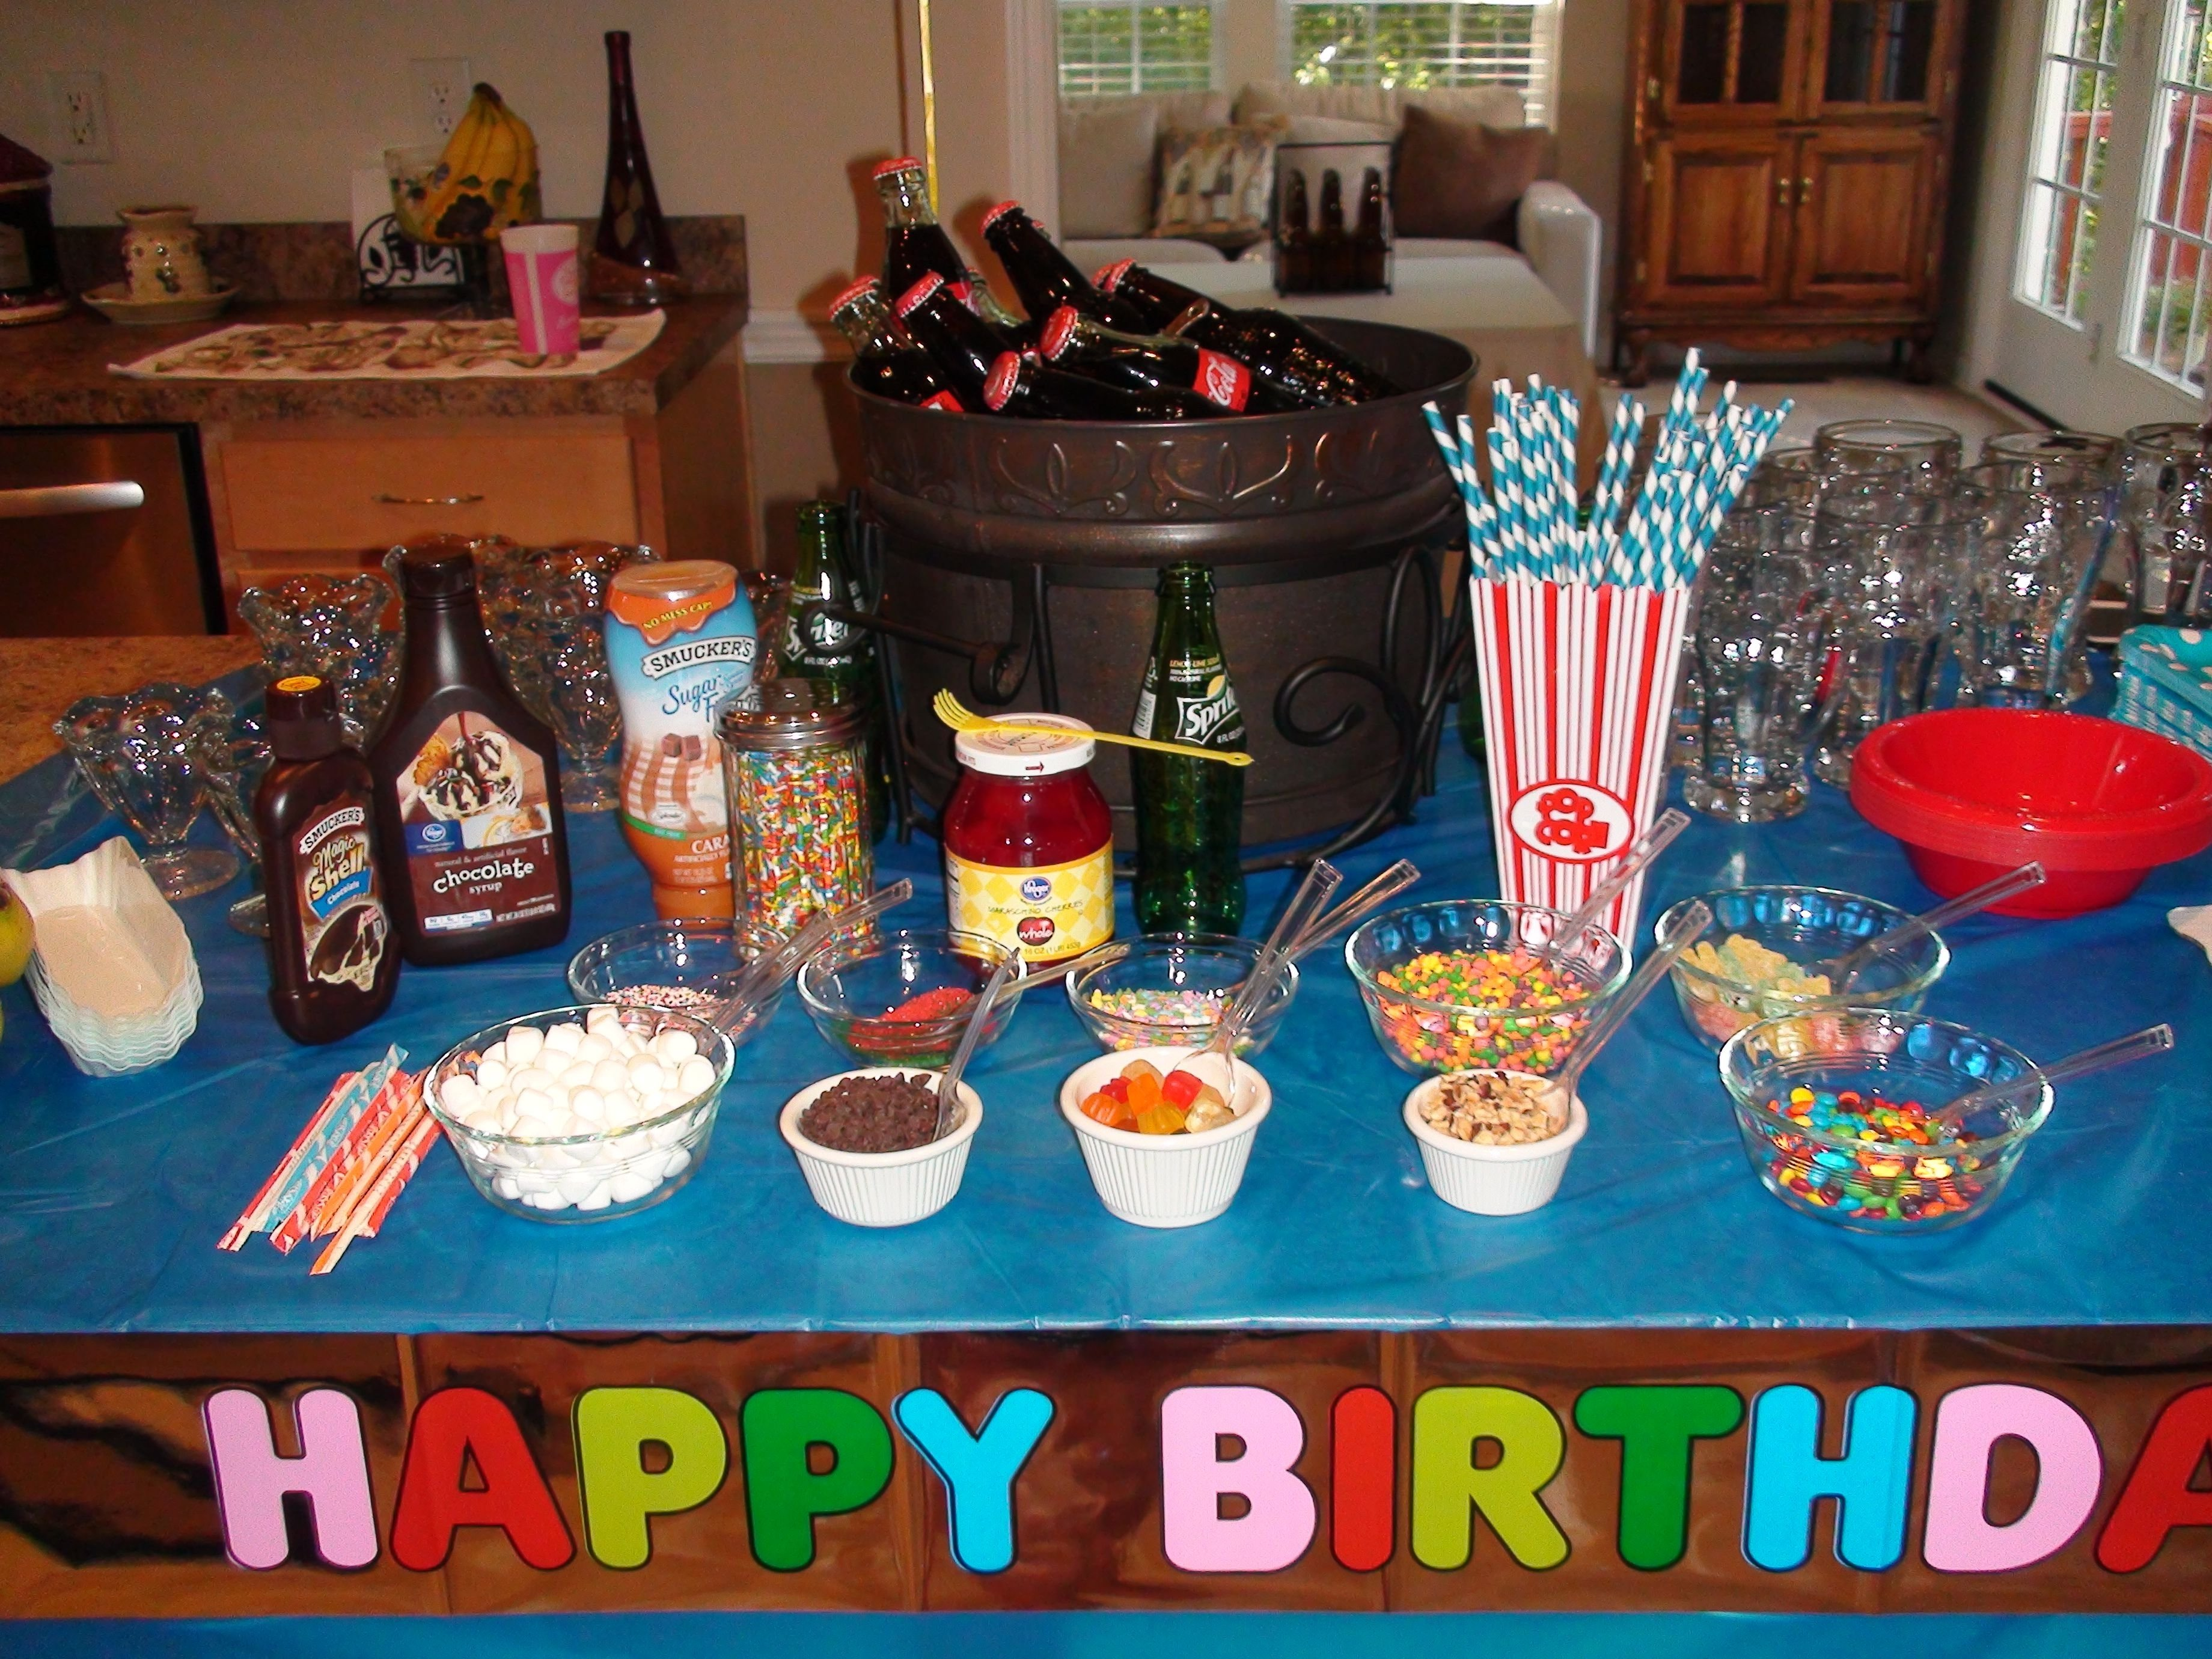 10 Best Birthday Party Ideas For A 12 Year Old Girl 12 year old party root beer floats banana splits ice cream with 16 2021